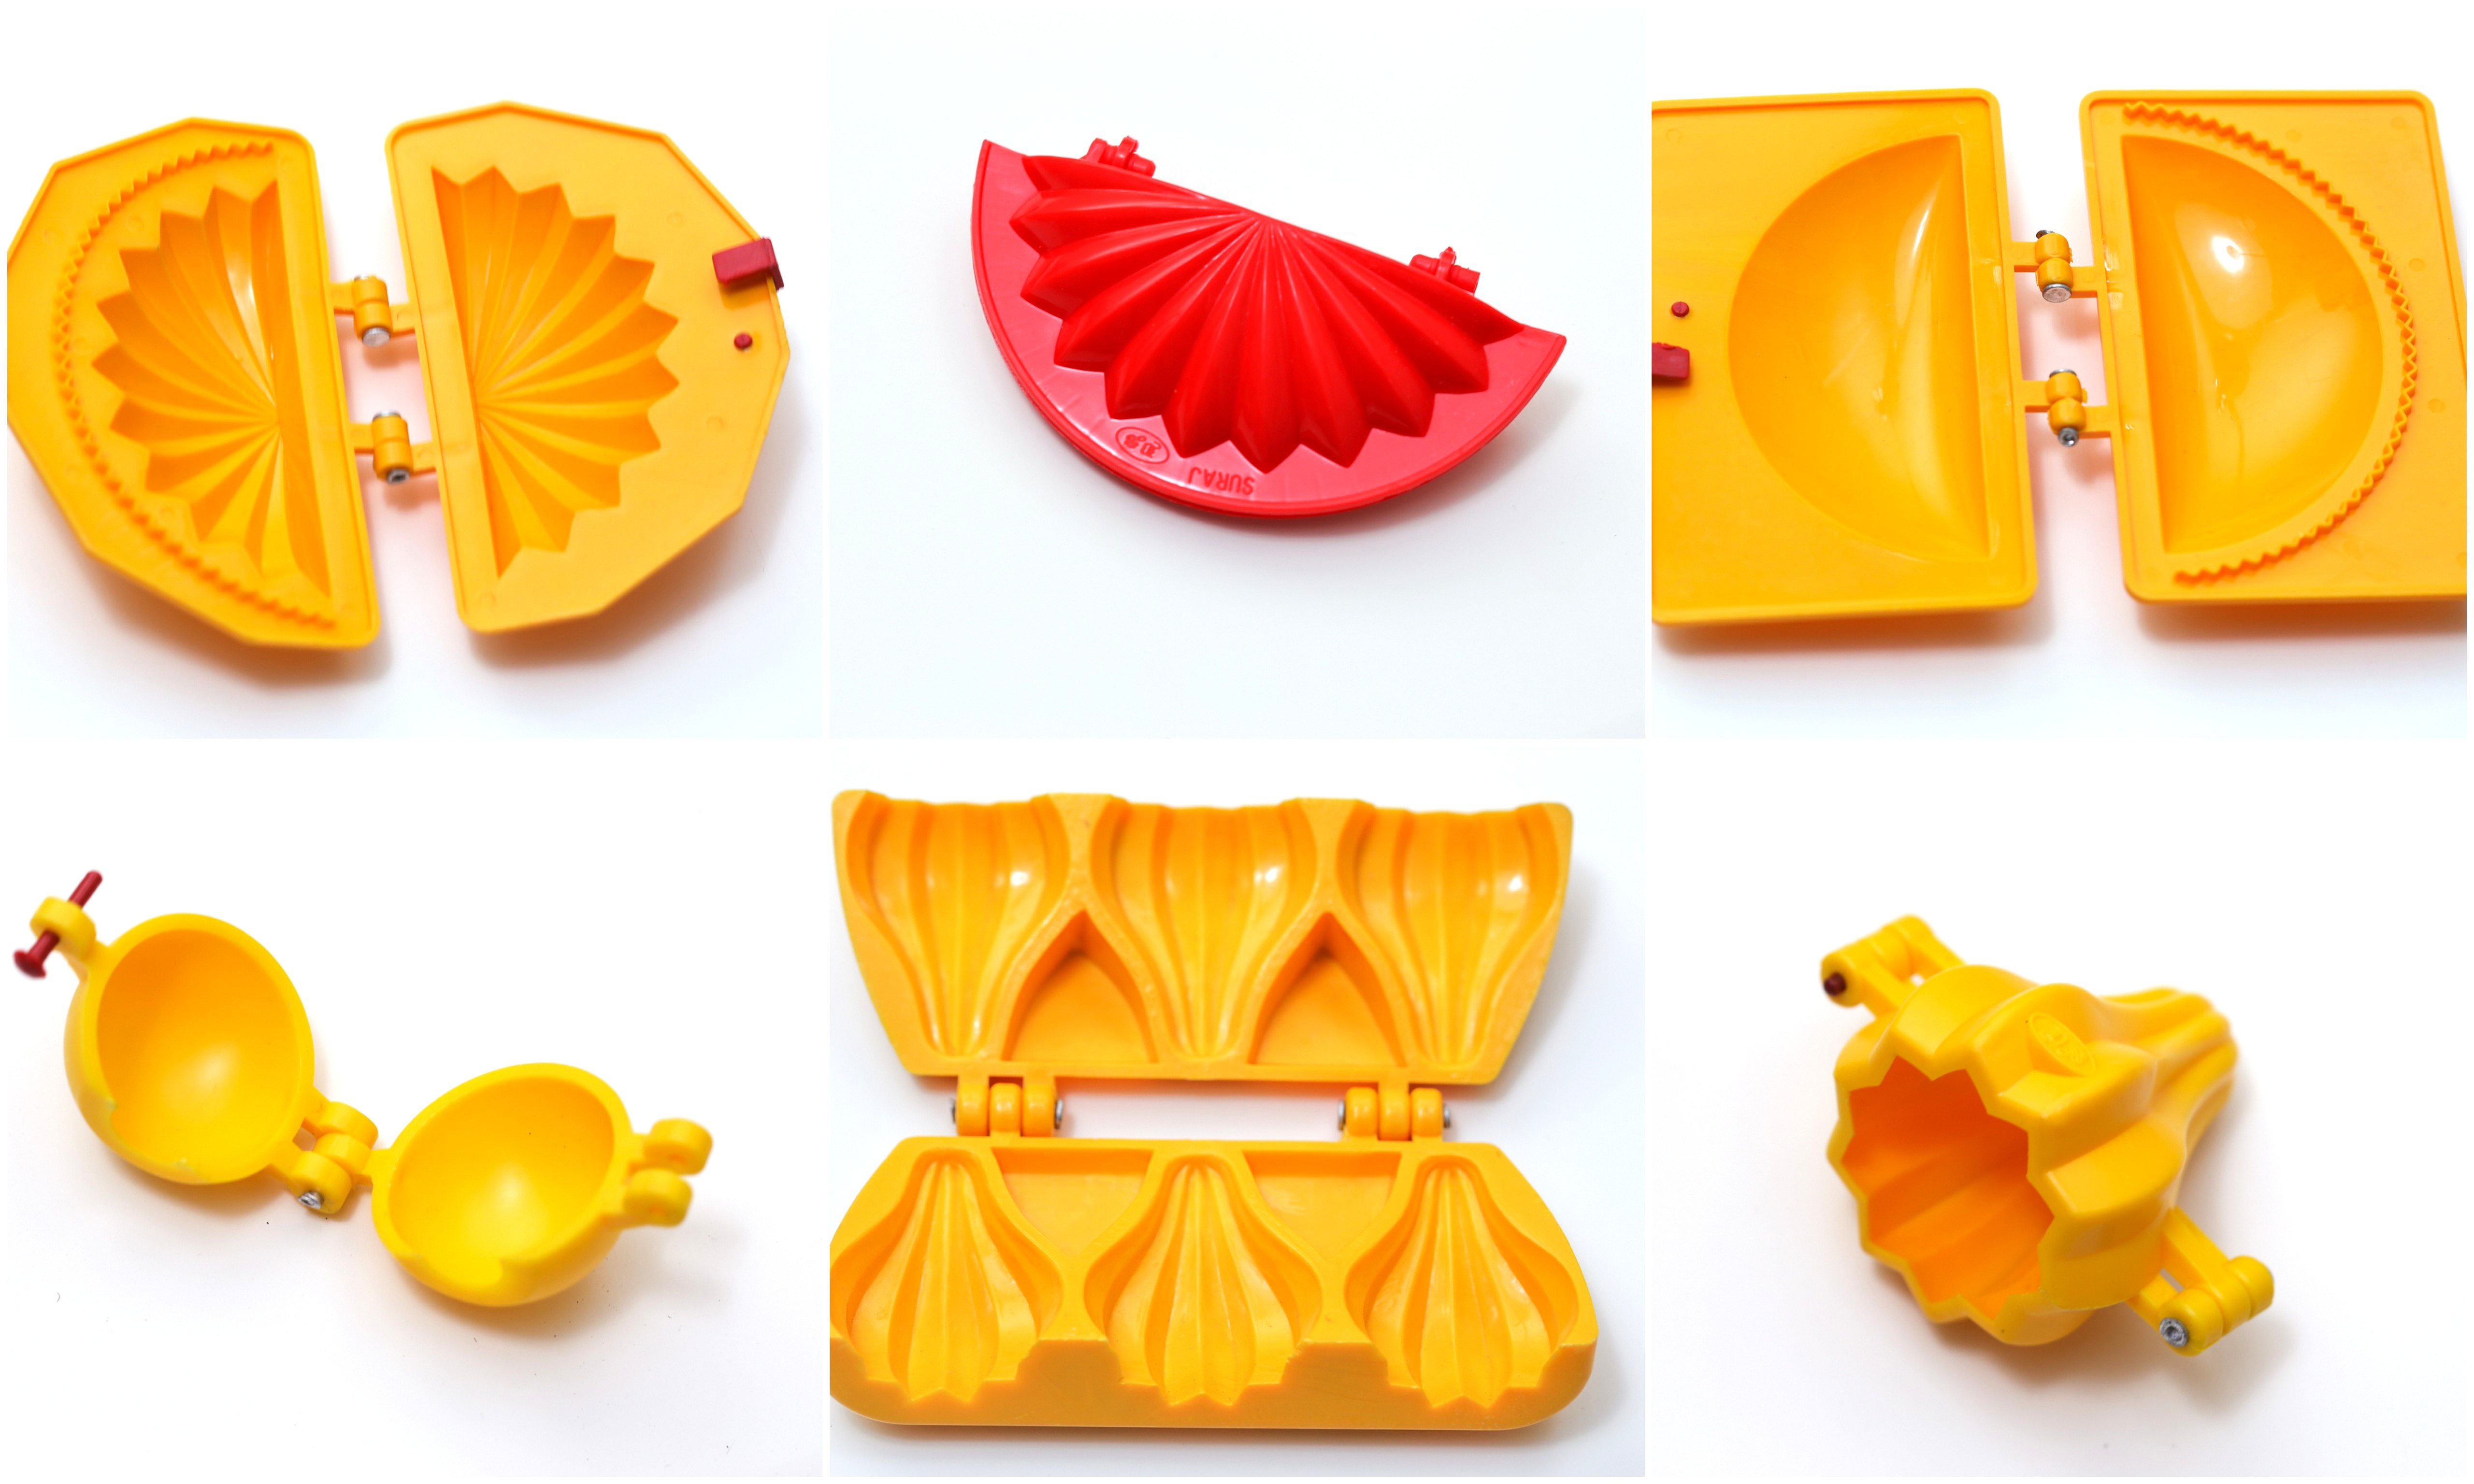 Diwali Moulds, Diwali sweets, Diwali mithai, yummy, indian festivals, indian sweets